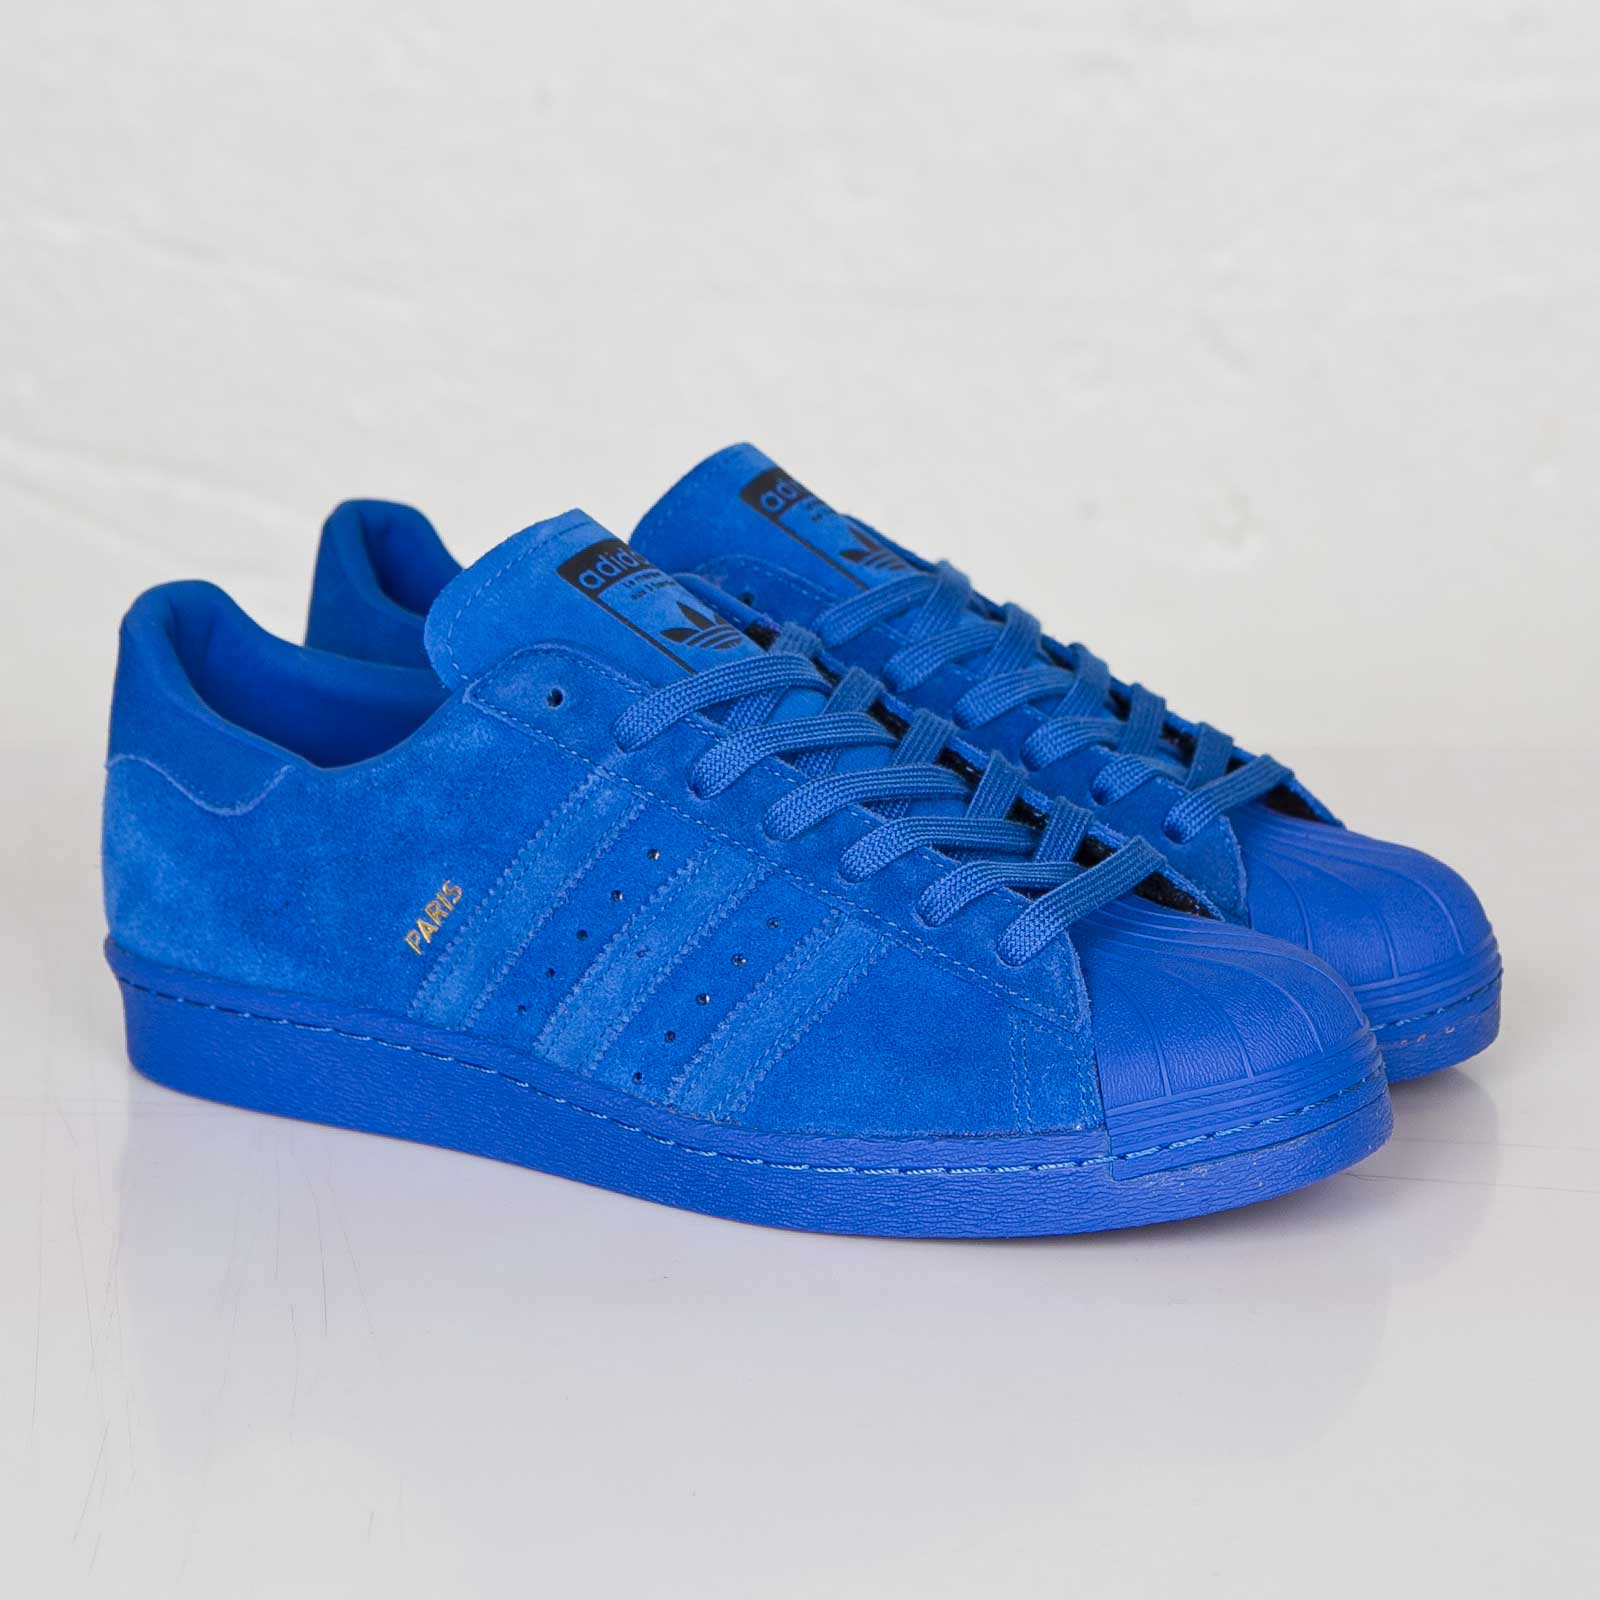 adidas superstar 41 blau